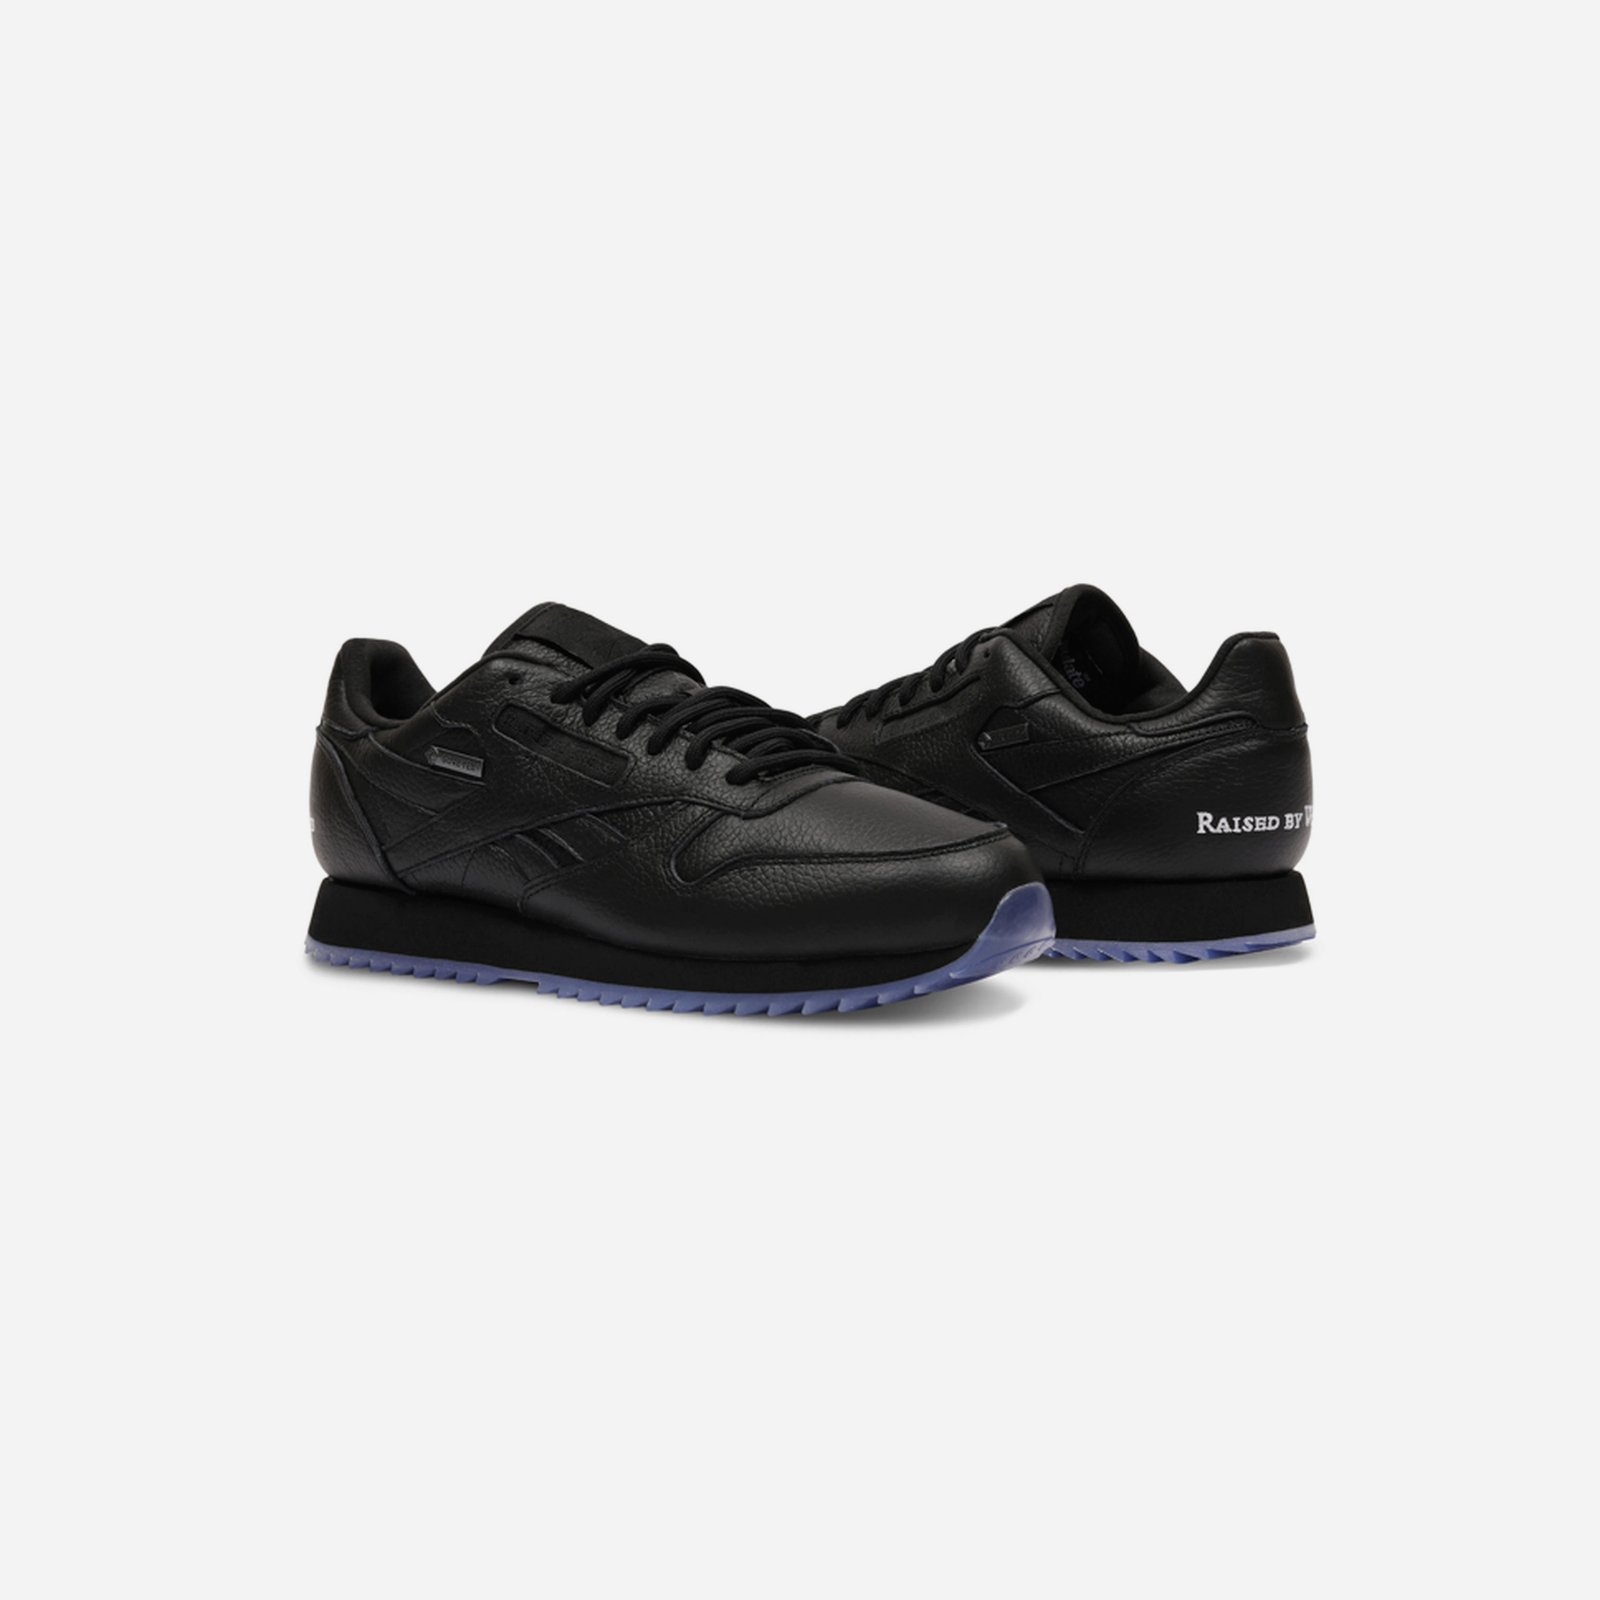 8d1c2be208520 Reebok Classic Leather Ripple GORE-TEX x Raised by Wolves - Cn0253 ...